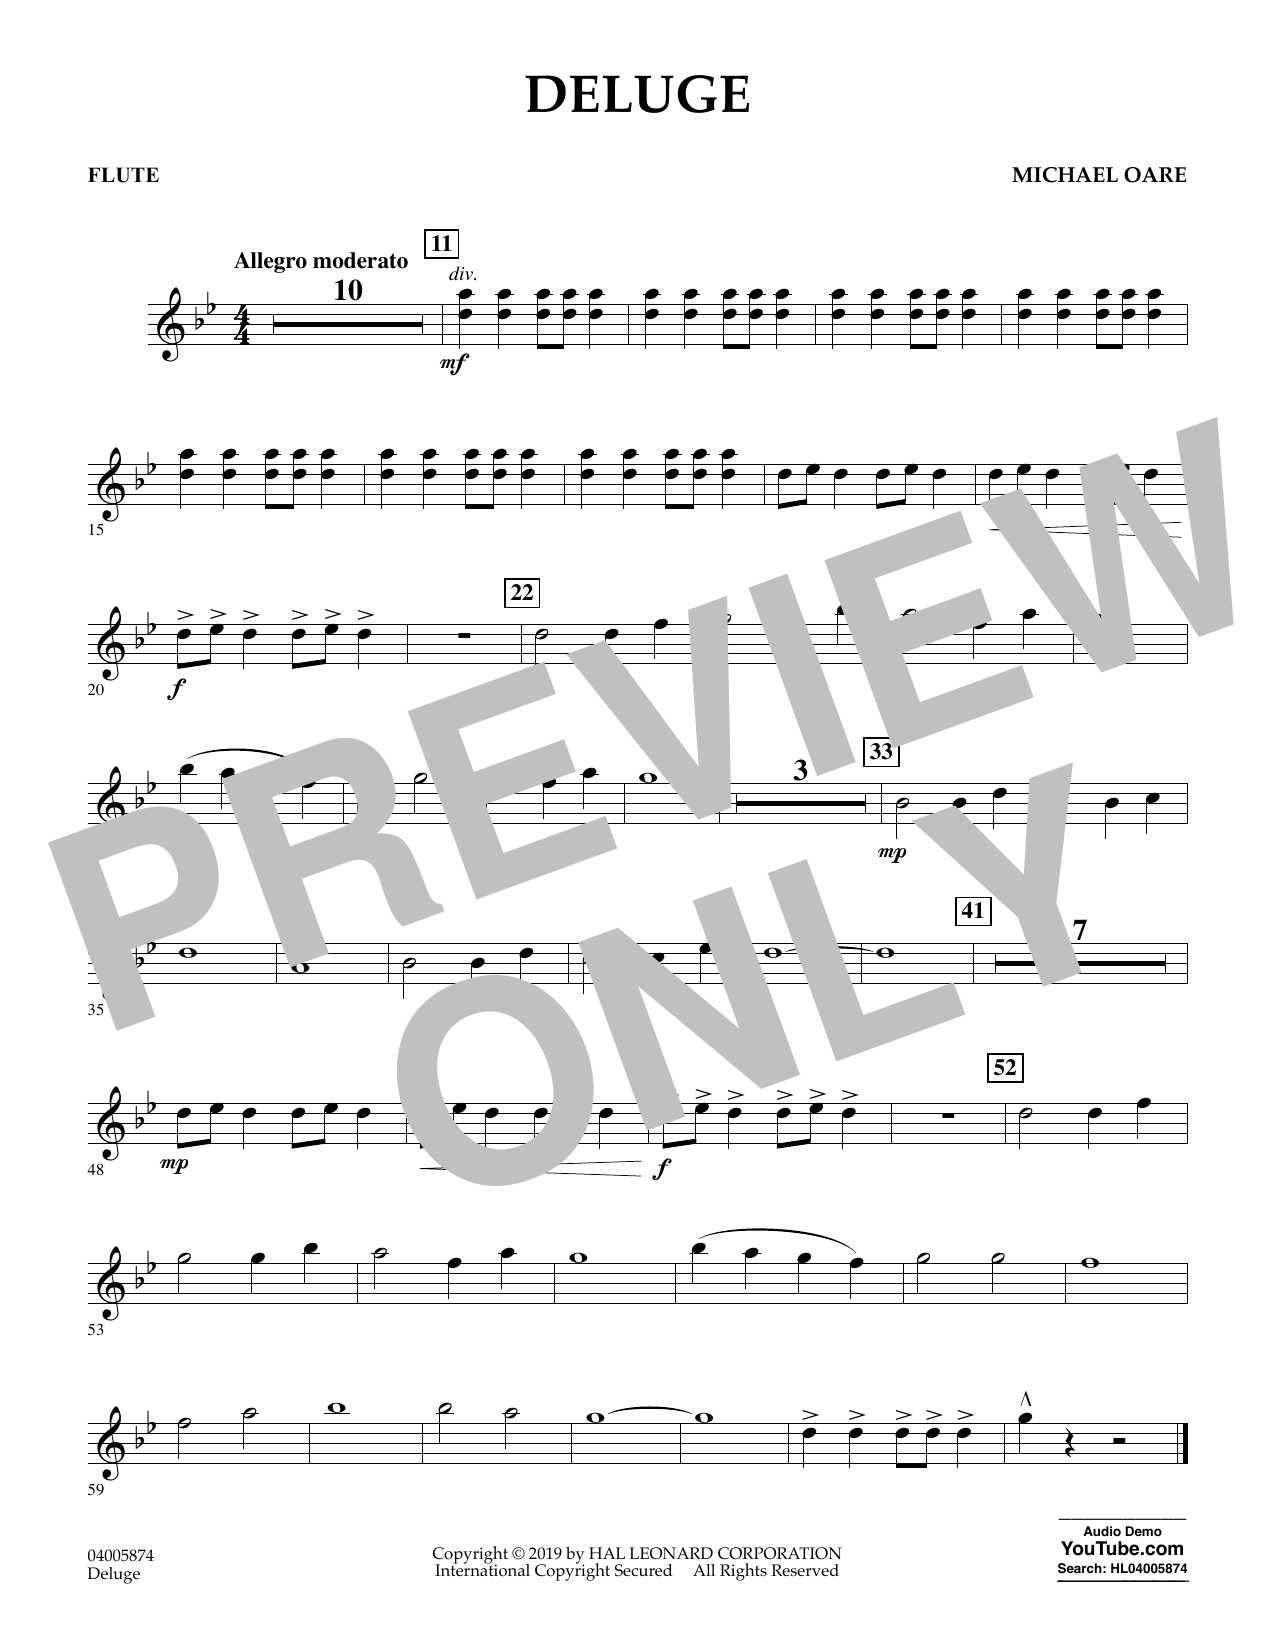 Michael Oare Deluge - Flute sheet music preview music notes and score for Concert Band including 1 page(s)